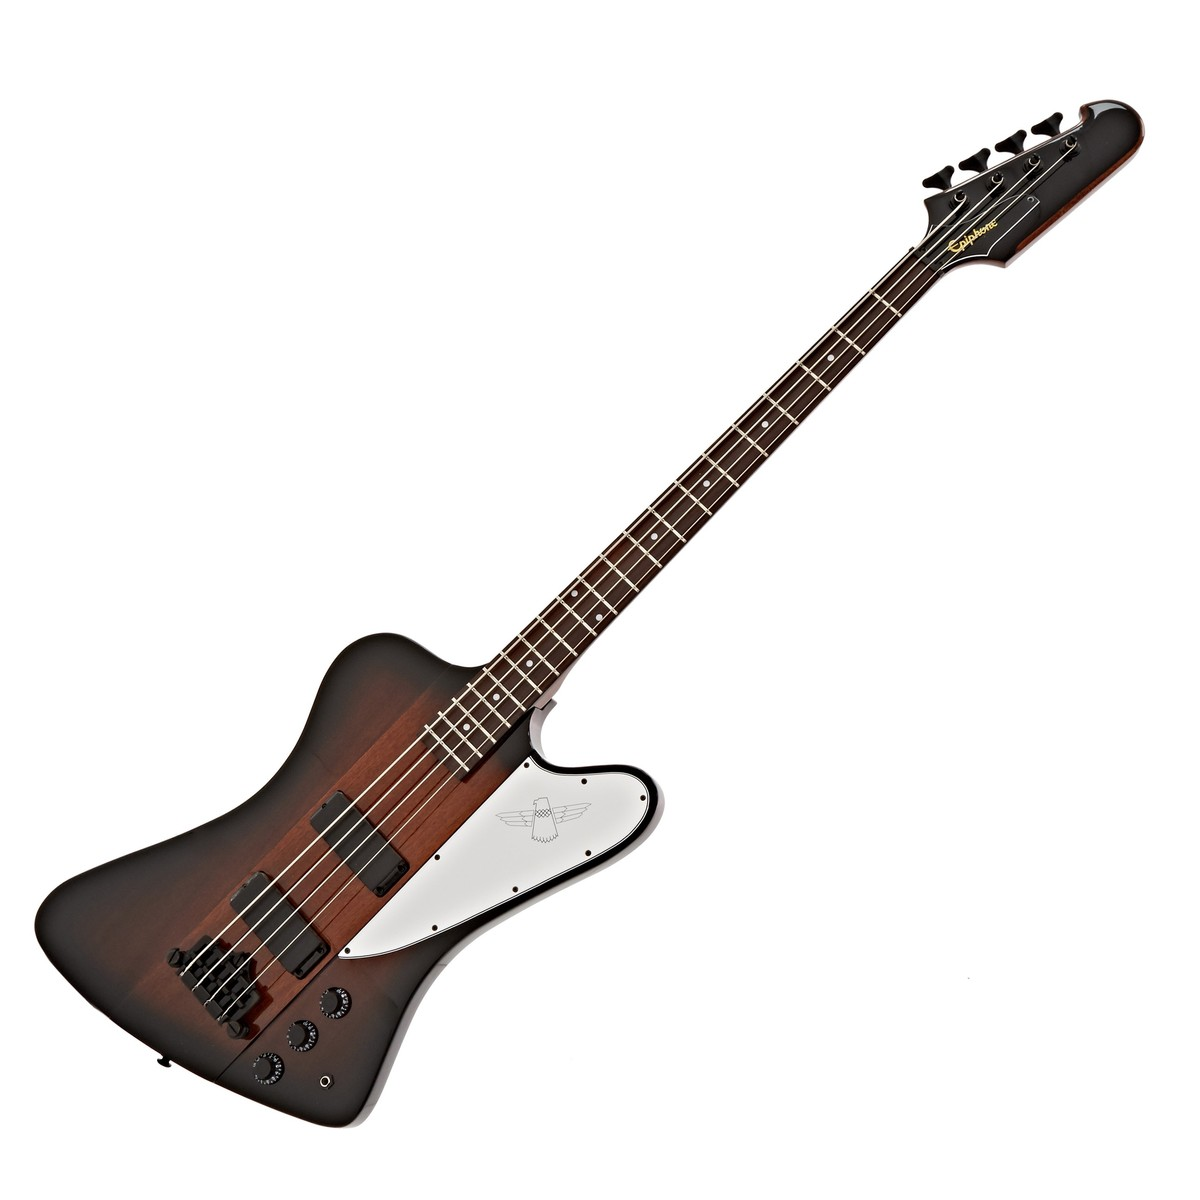 epiphone thunderbird iv bass vintage sunburst at gear4music. Black Bedroom Furniture Sets. Home Design Ideas